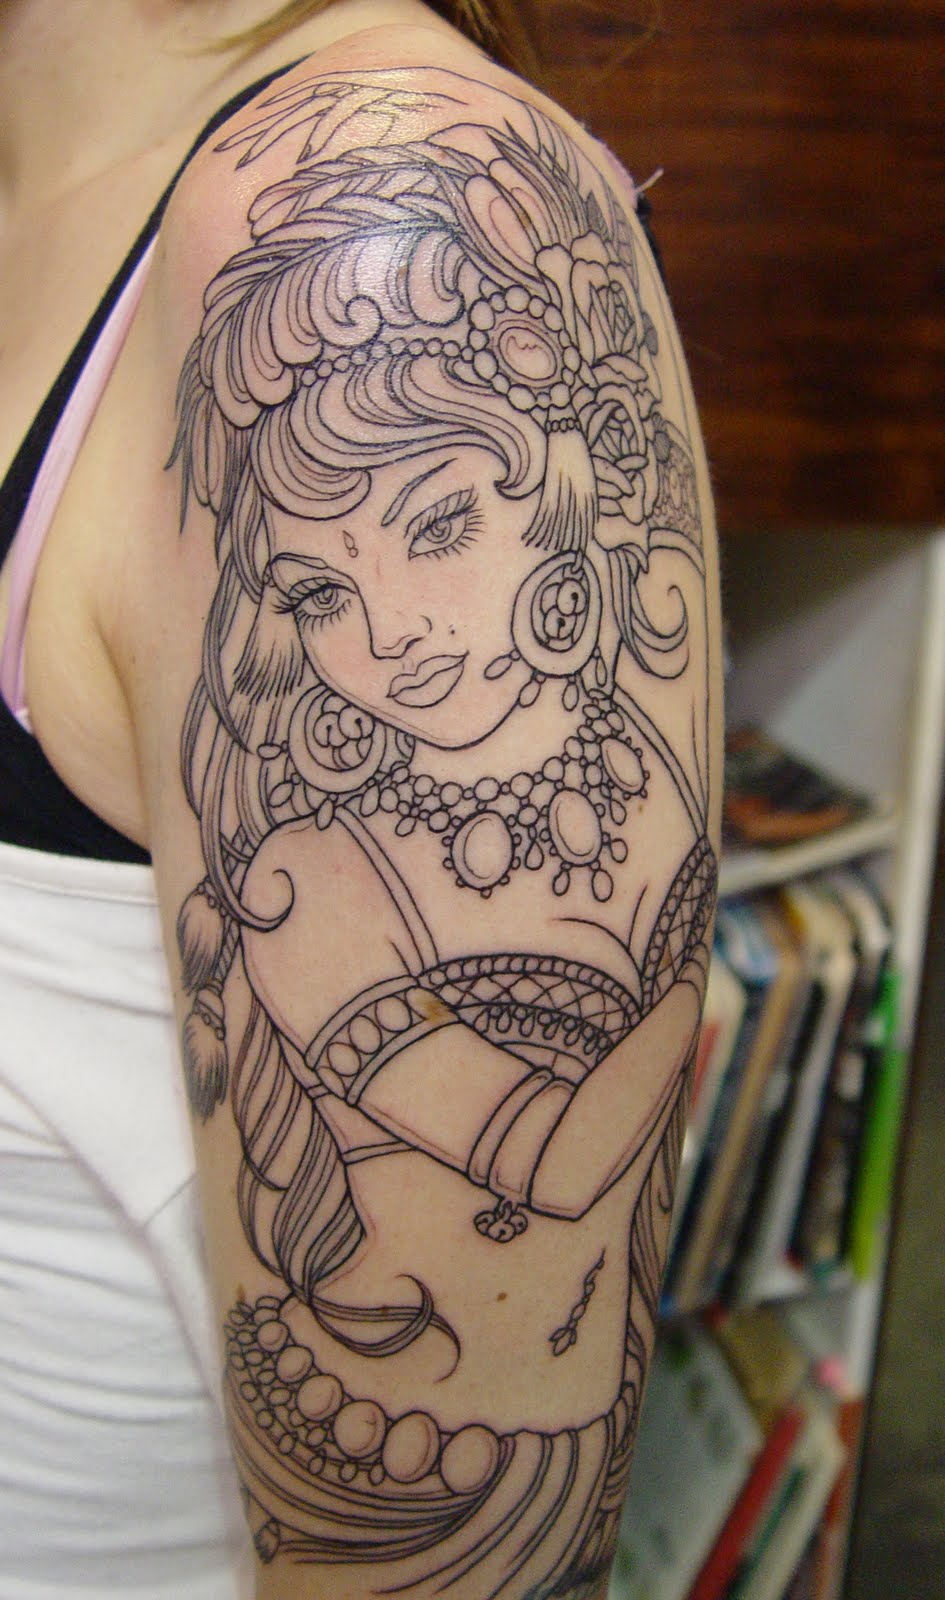 Gypsy Girl Tattoo Designs